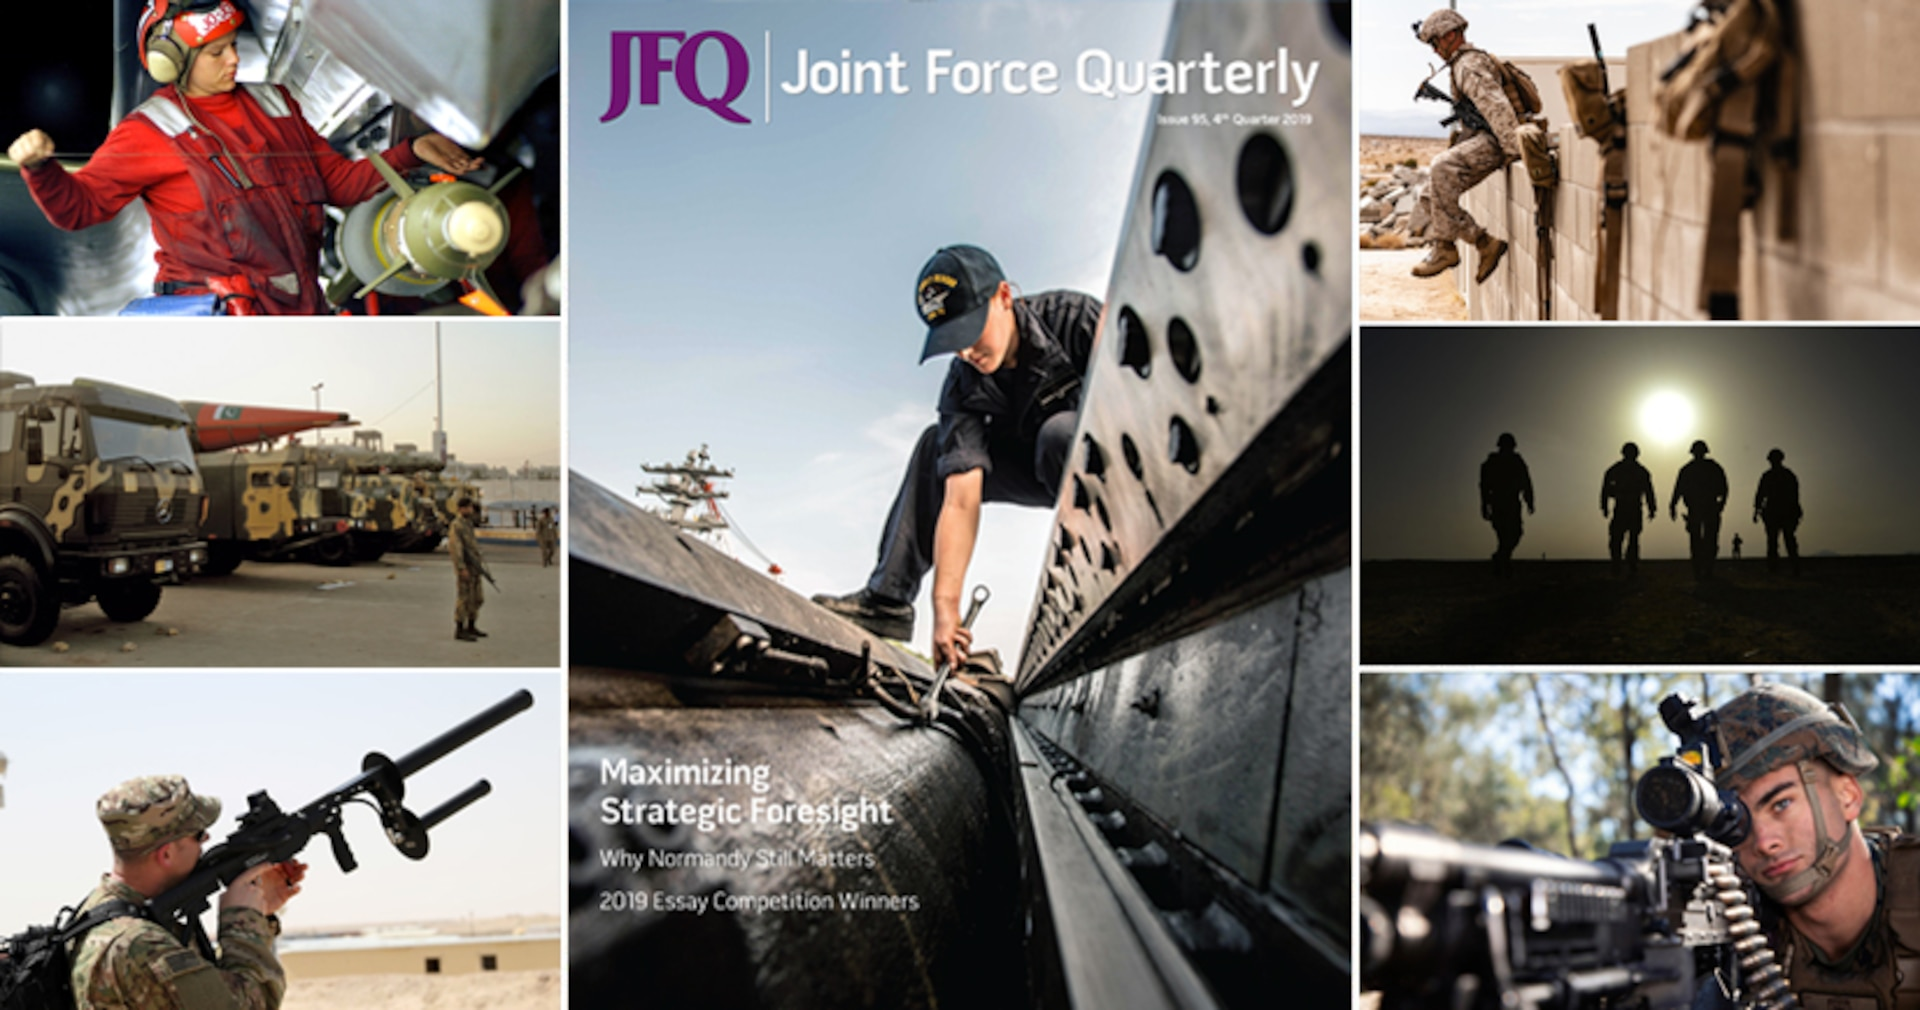 Joint Force Quarterly 95